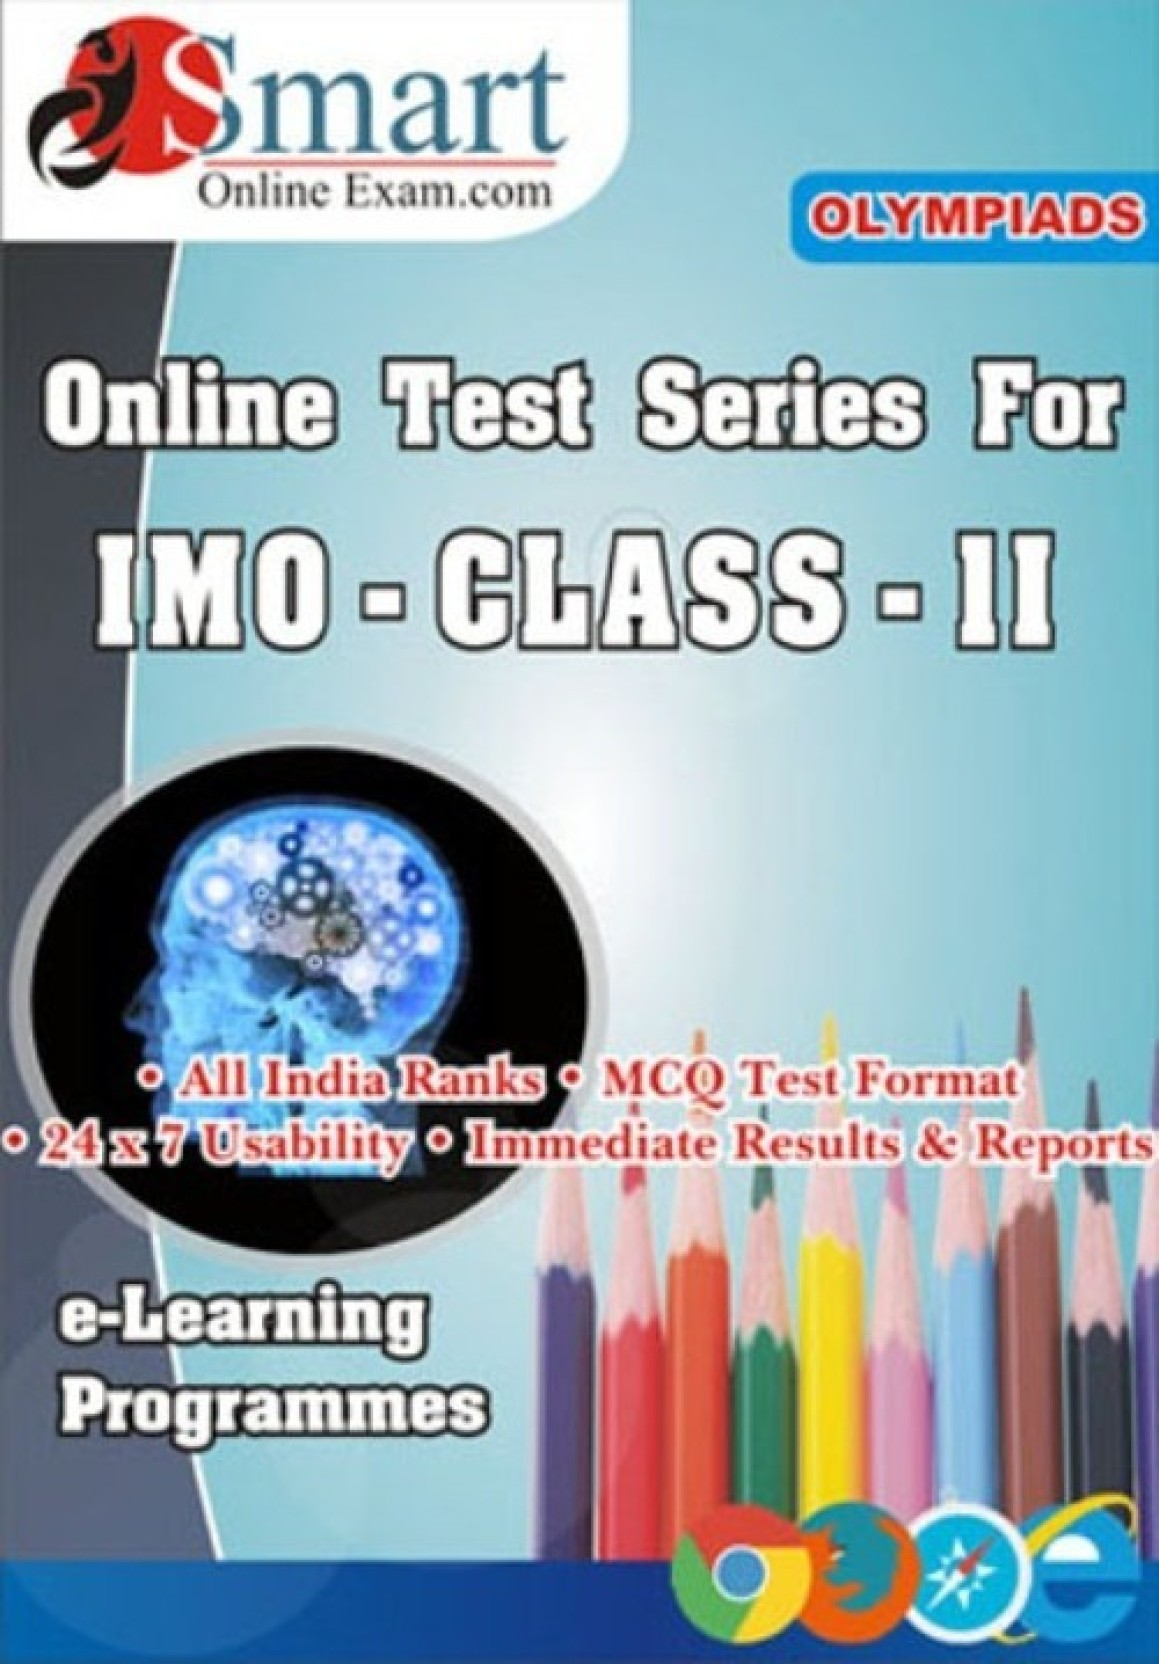 Smart Online Exam IMO Class - 2 English Online Test Price in